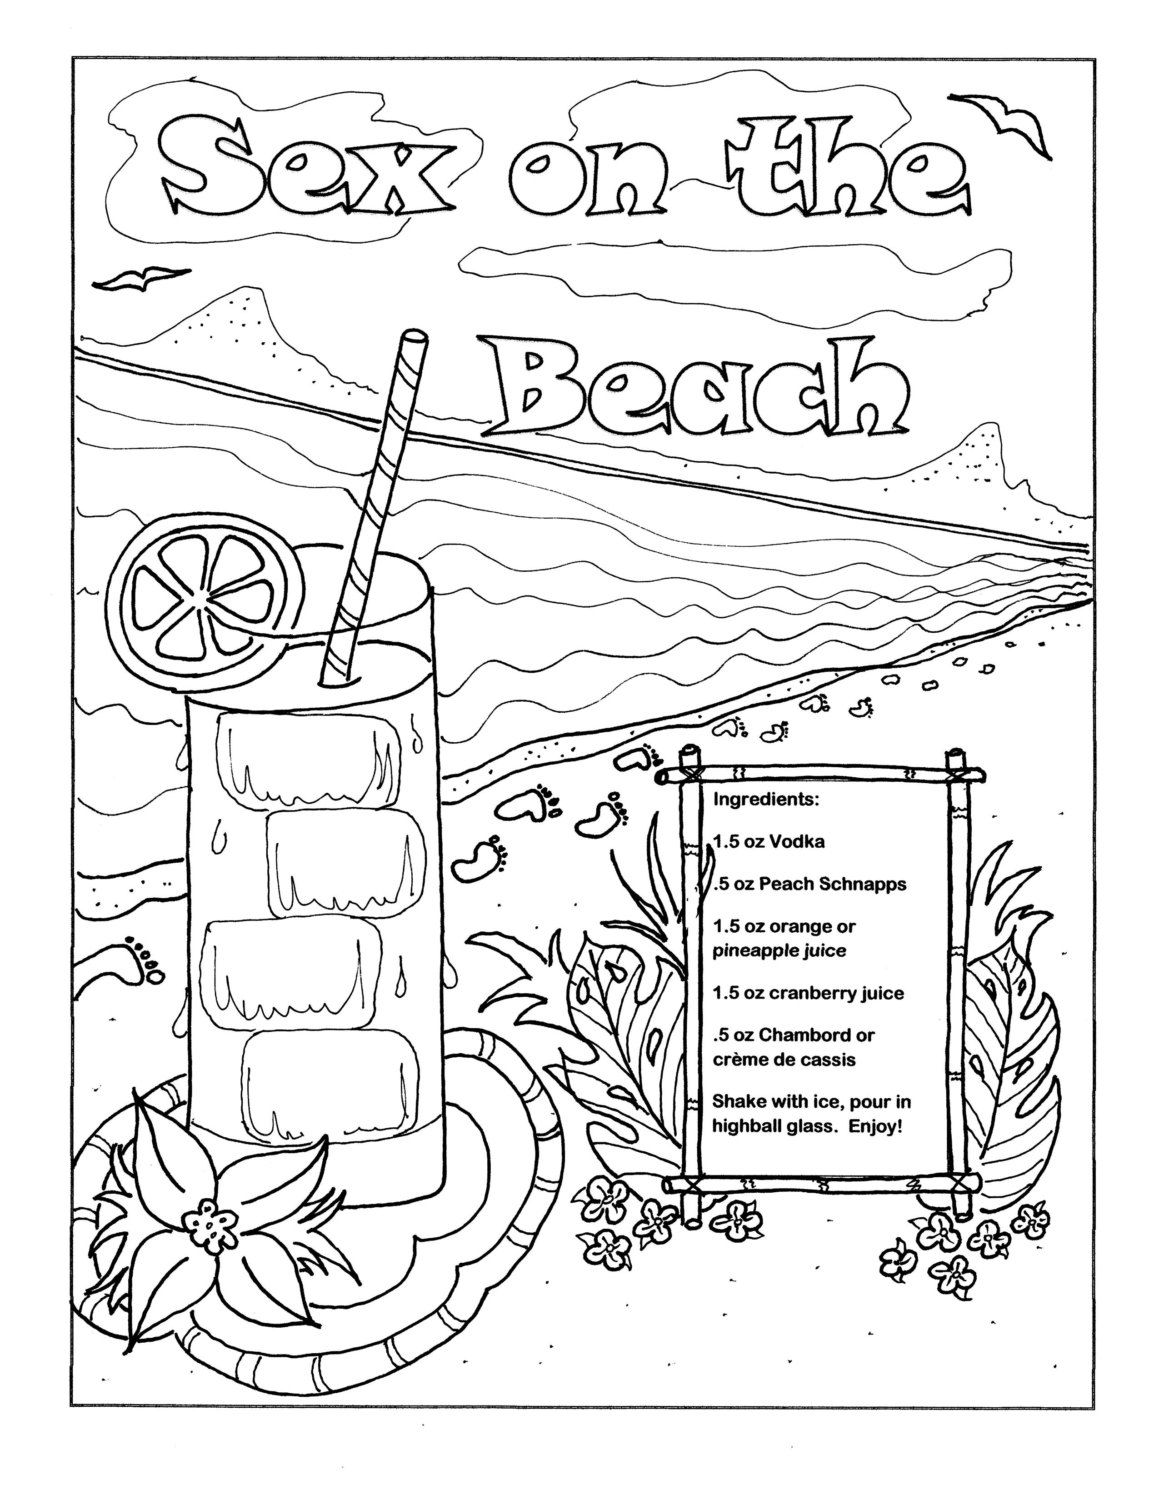 Coloring pages 365 marital sex ~ Printable Coloring Page for Adults Sex on the by ...